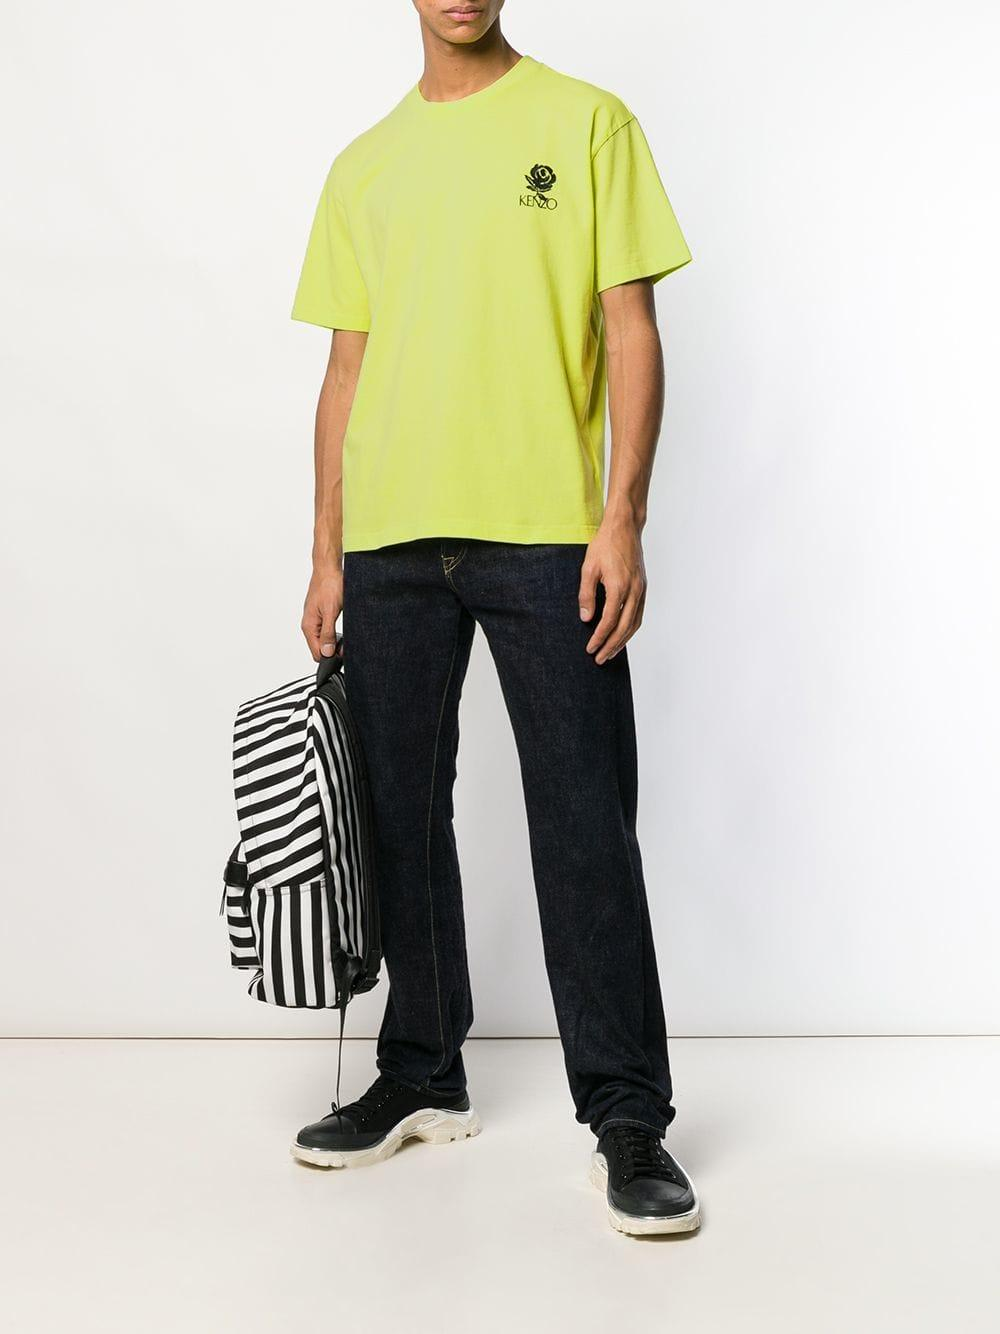 3b2d29f41da8 Lyst - KENZO Yellow Rose Crest Skate T-shirt in Yellow for Men - Save 6%